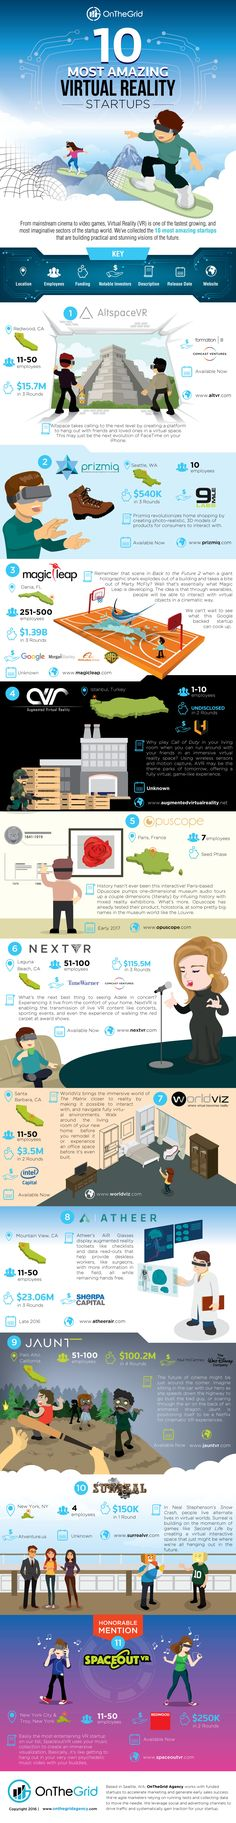 10 Most Amazing Virtual Reality Startups! #Infographic #Business #Startup